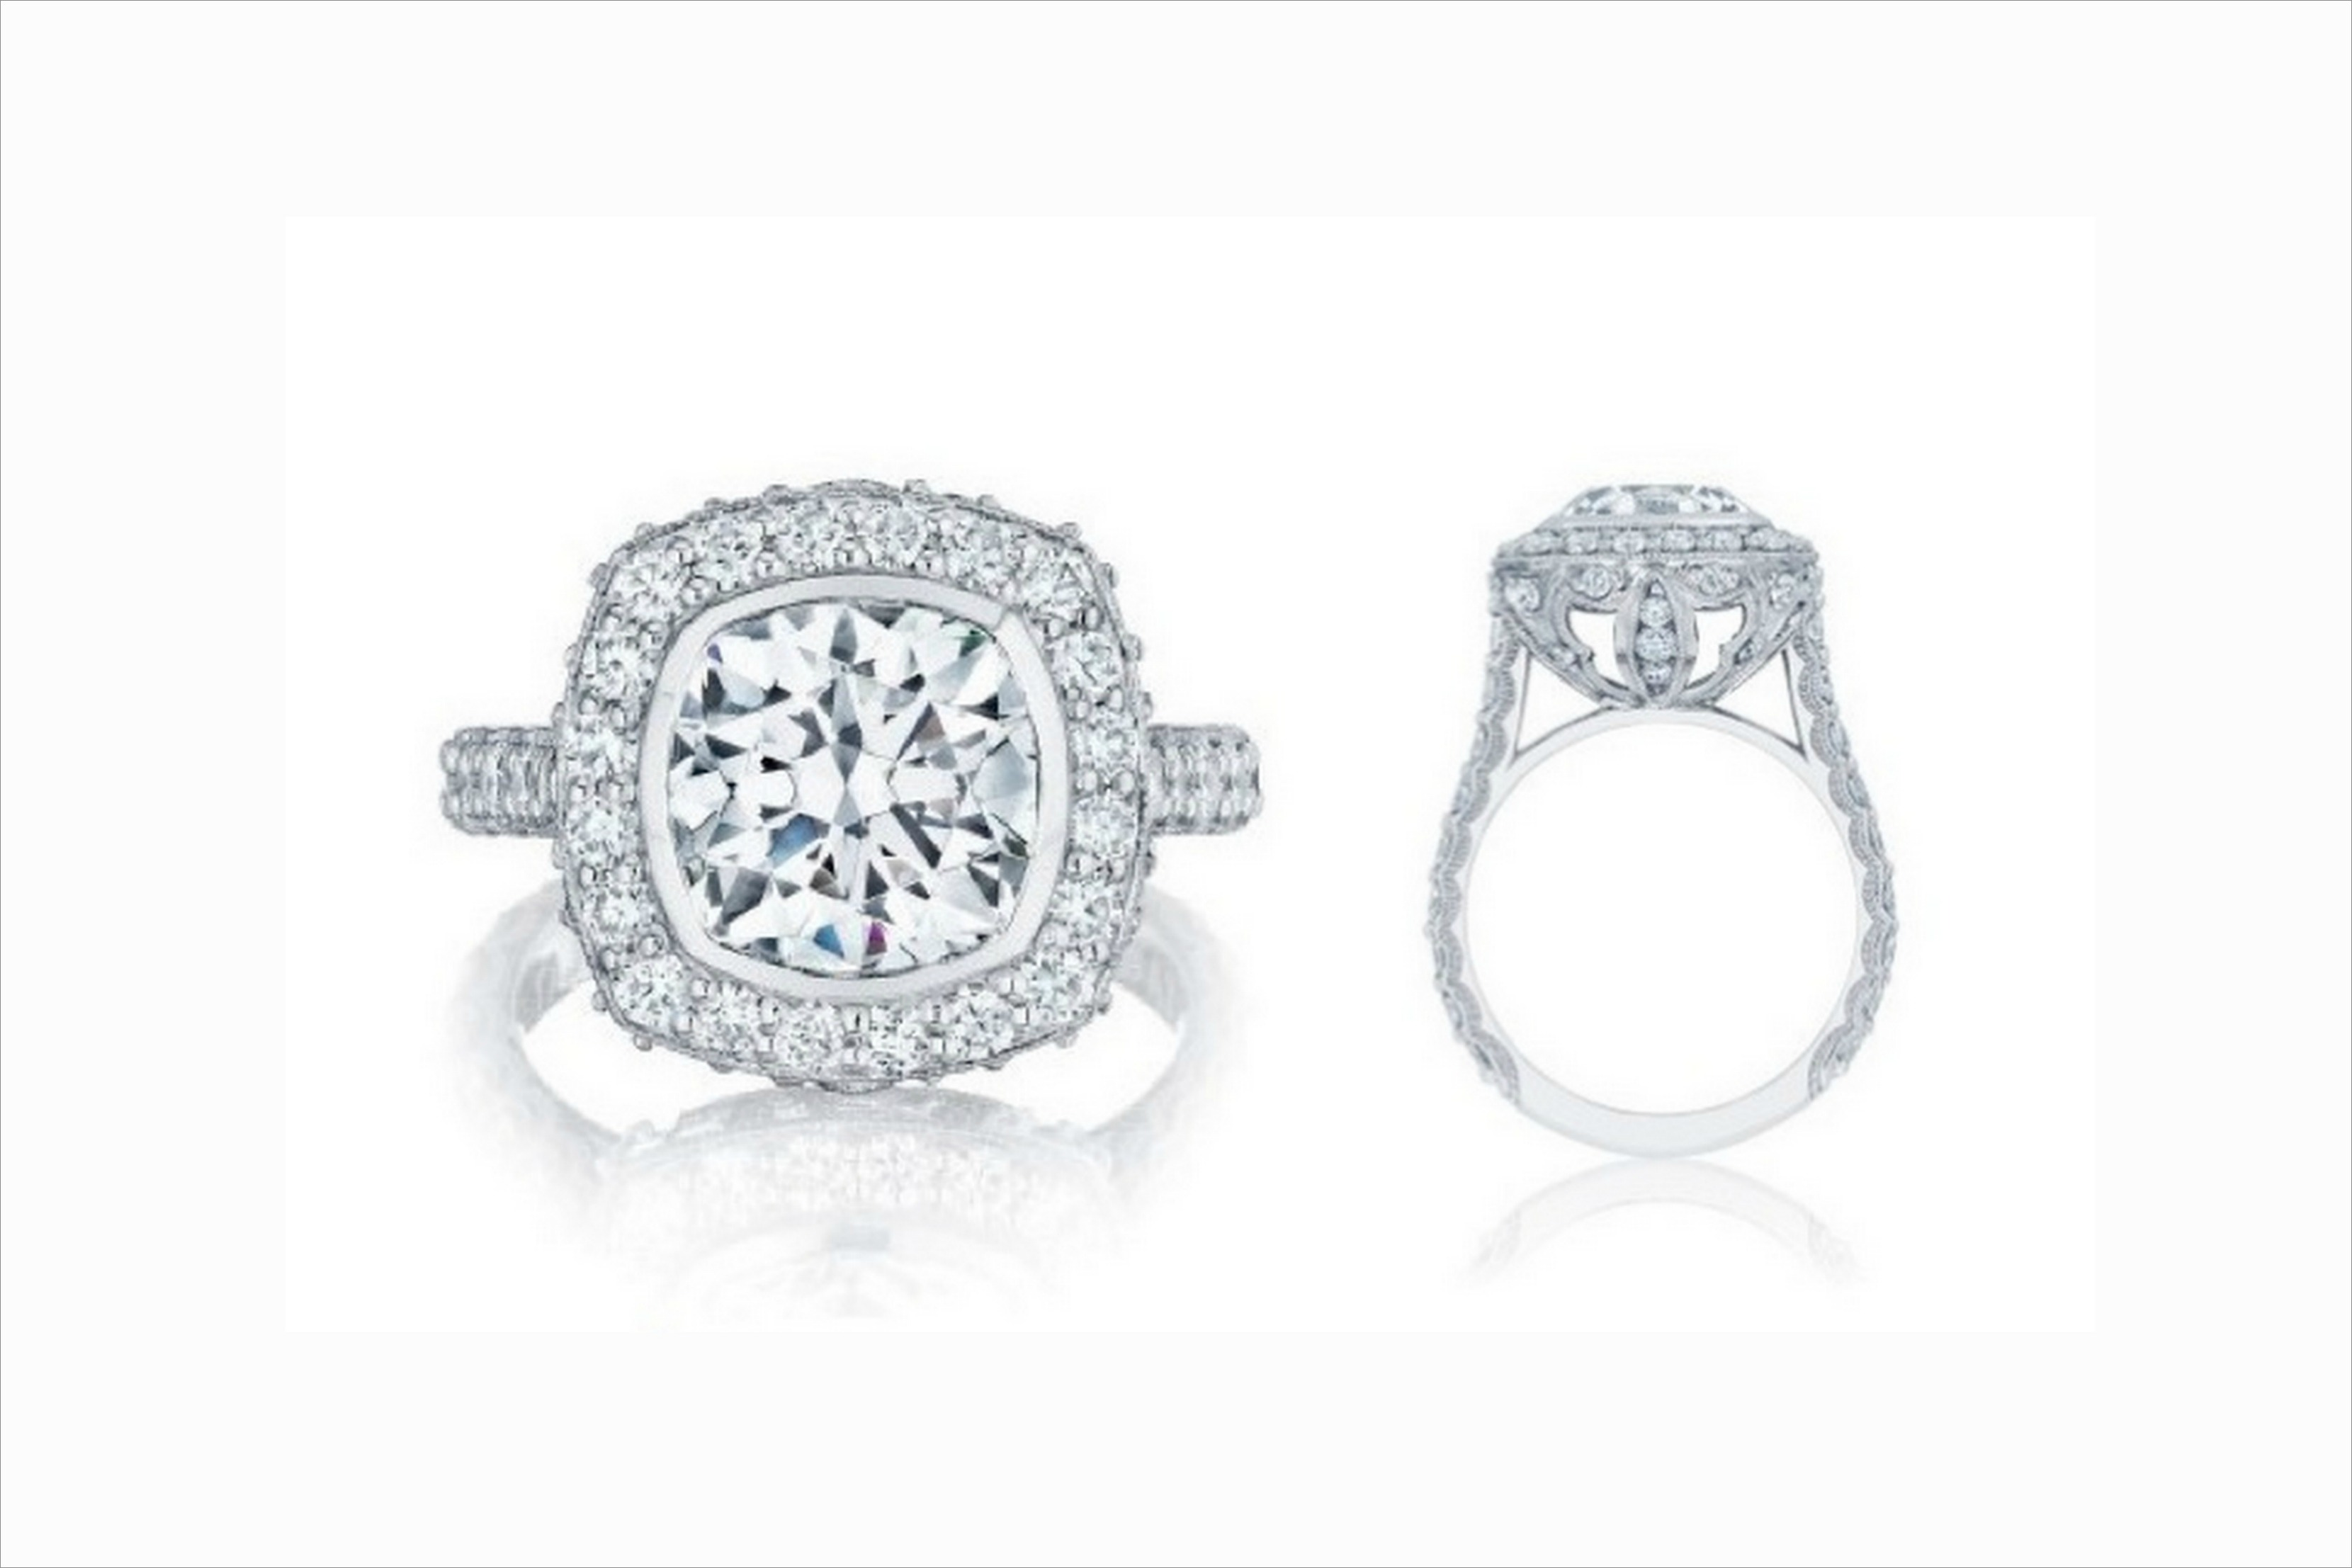 Cushion cut diamond rings from Tacori